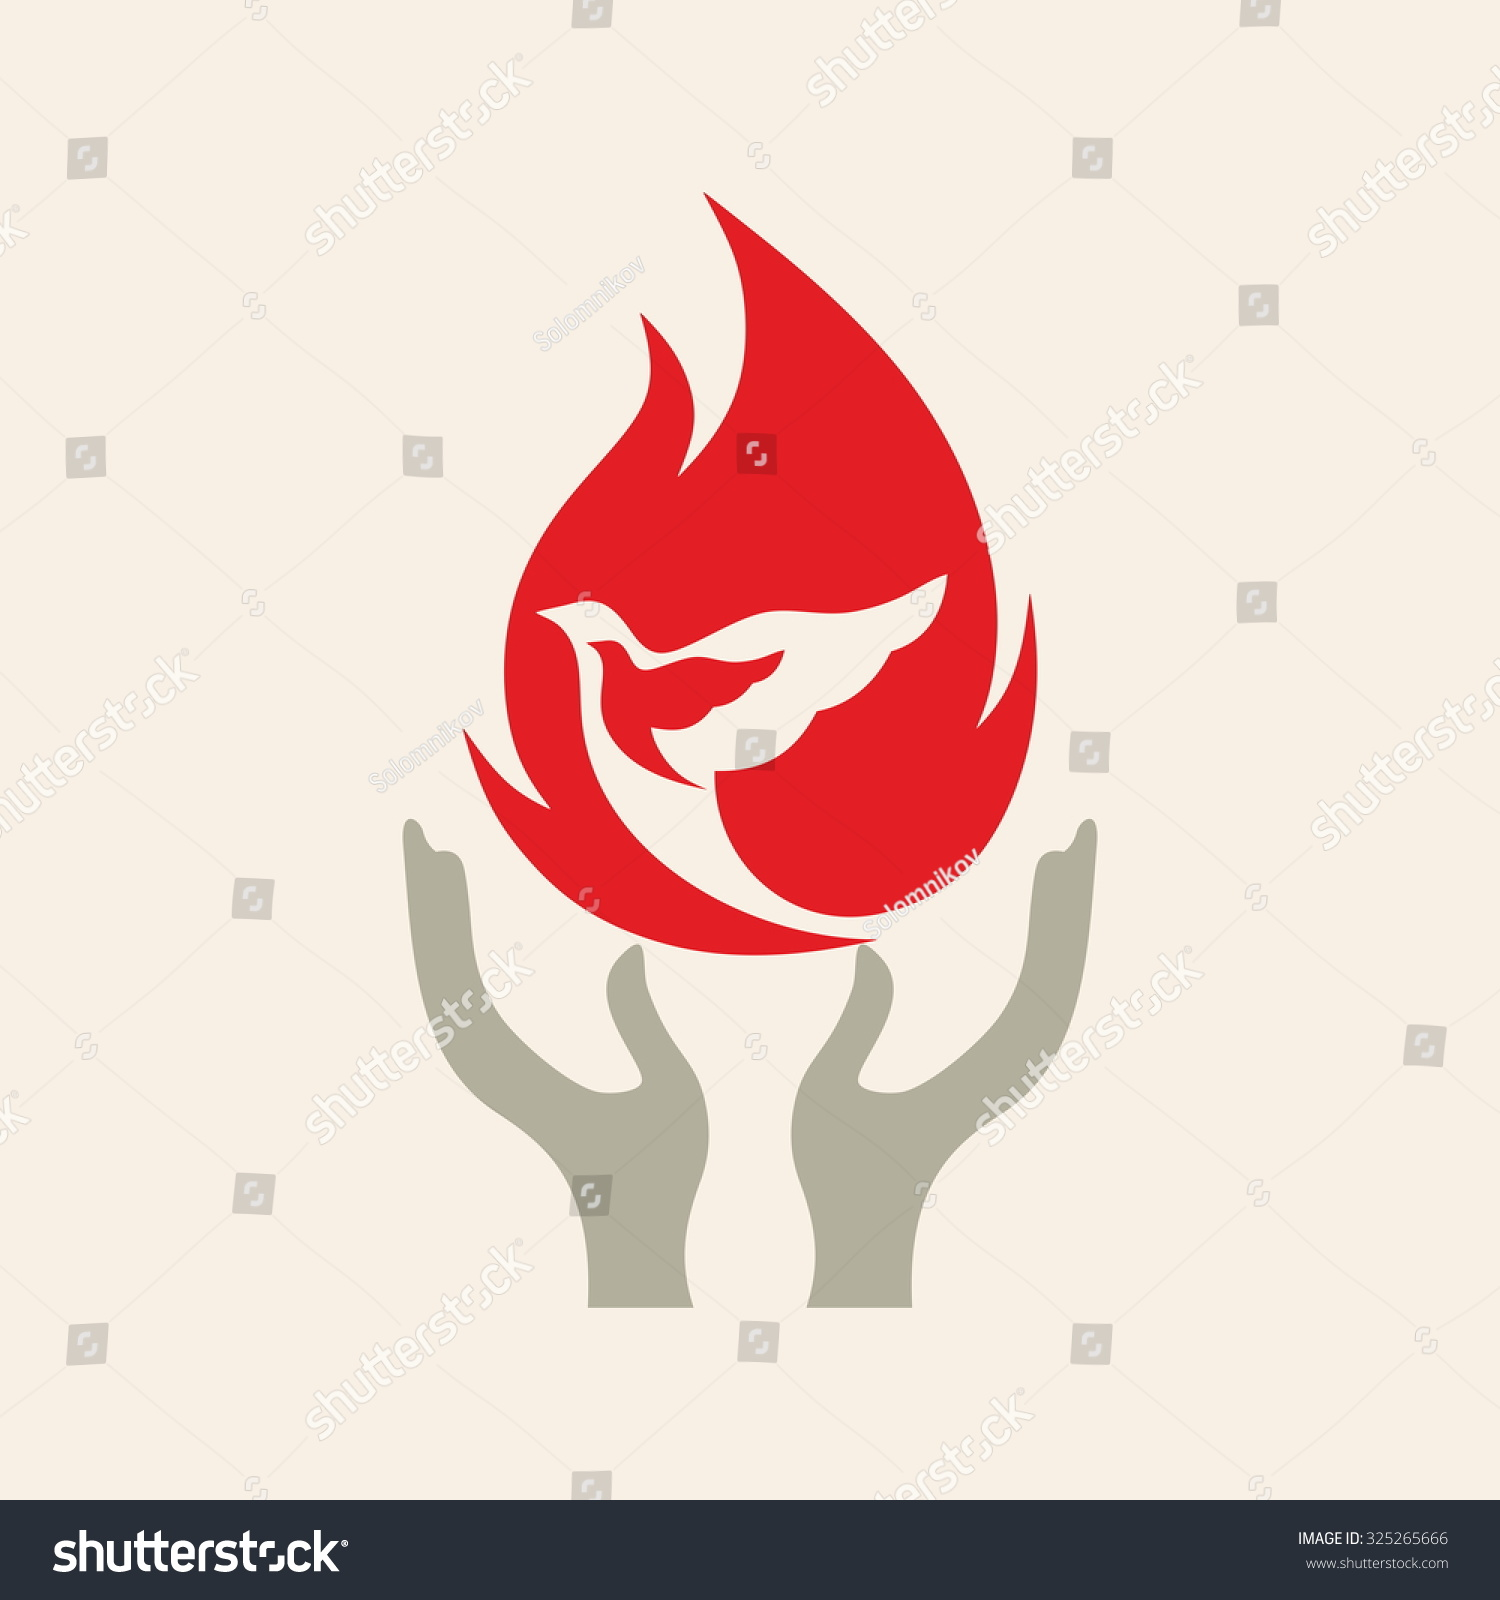 Church logo Dove in flames hands